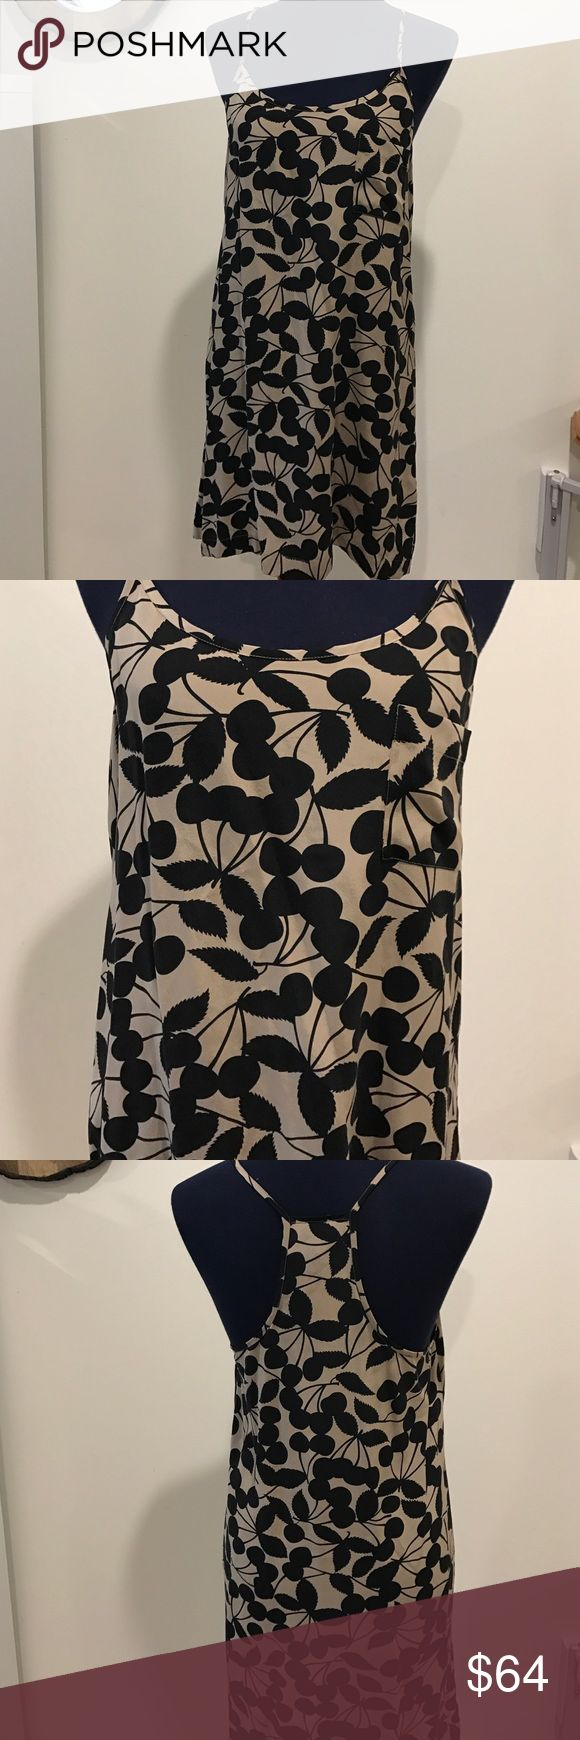 """JOIE Silk Cambridge Tank Dress NWT Size Small NWT Joie Silk Tank Dress with Super Cute Cherry and Stems Pattern  •Women's Size Small •1 Front Pocket •Armpit to armpit: 17"""" •Length: 31"""" •Dry Clean Only  From aSmoke Free Environment  Please feel free to contact me with any questions, thank you for taking a look! Joie Dresses"""